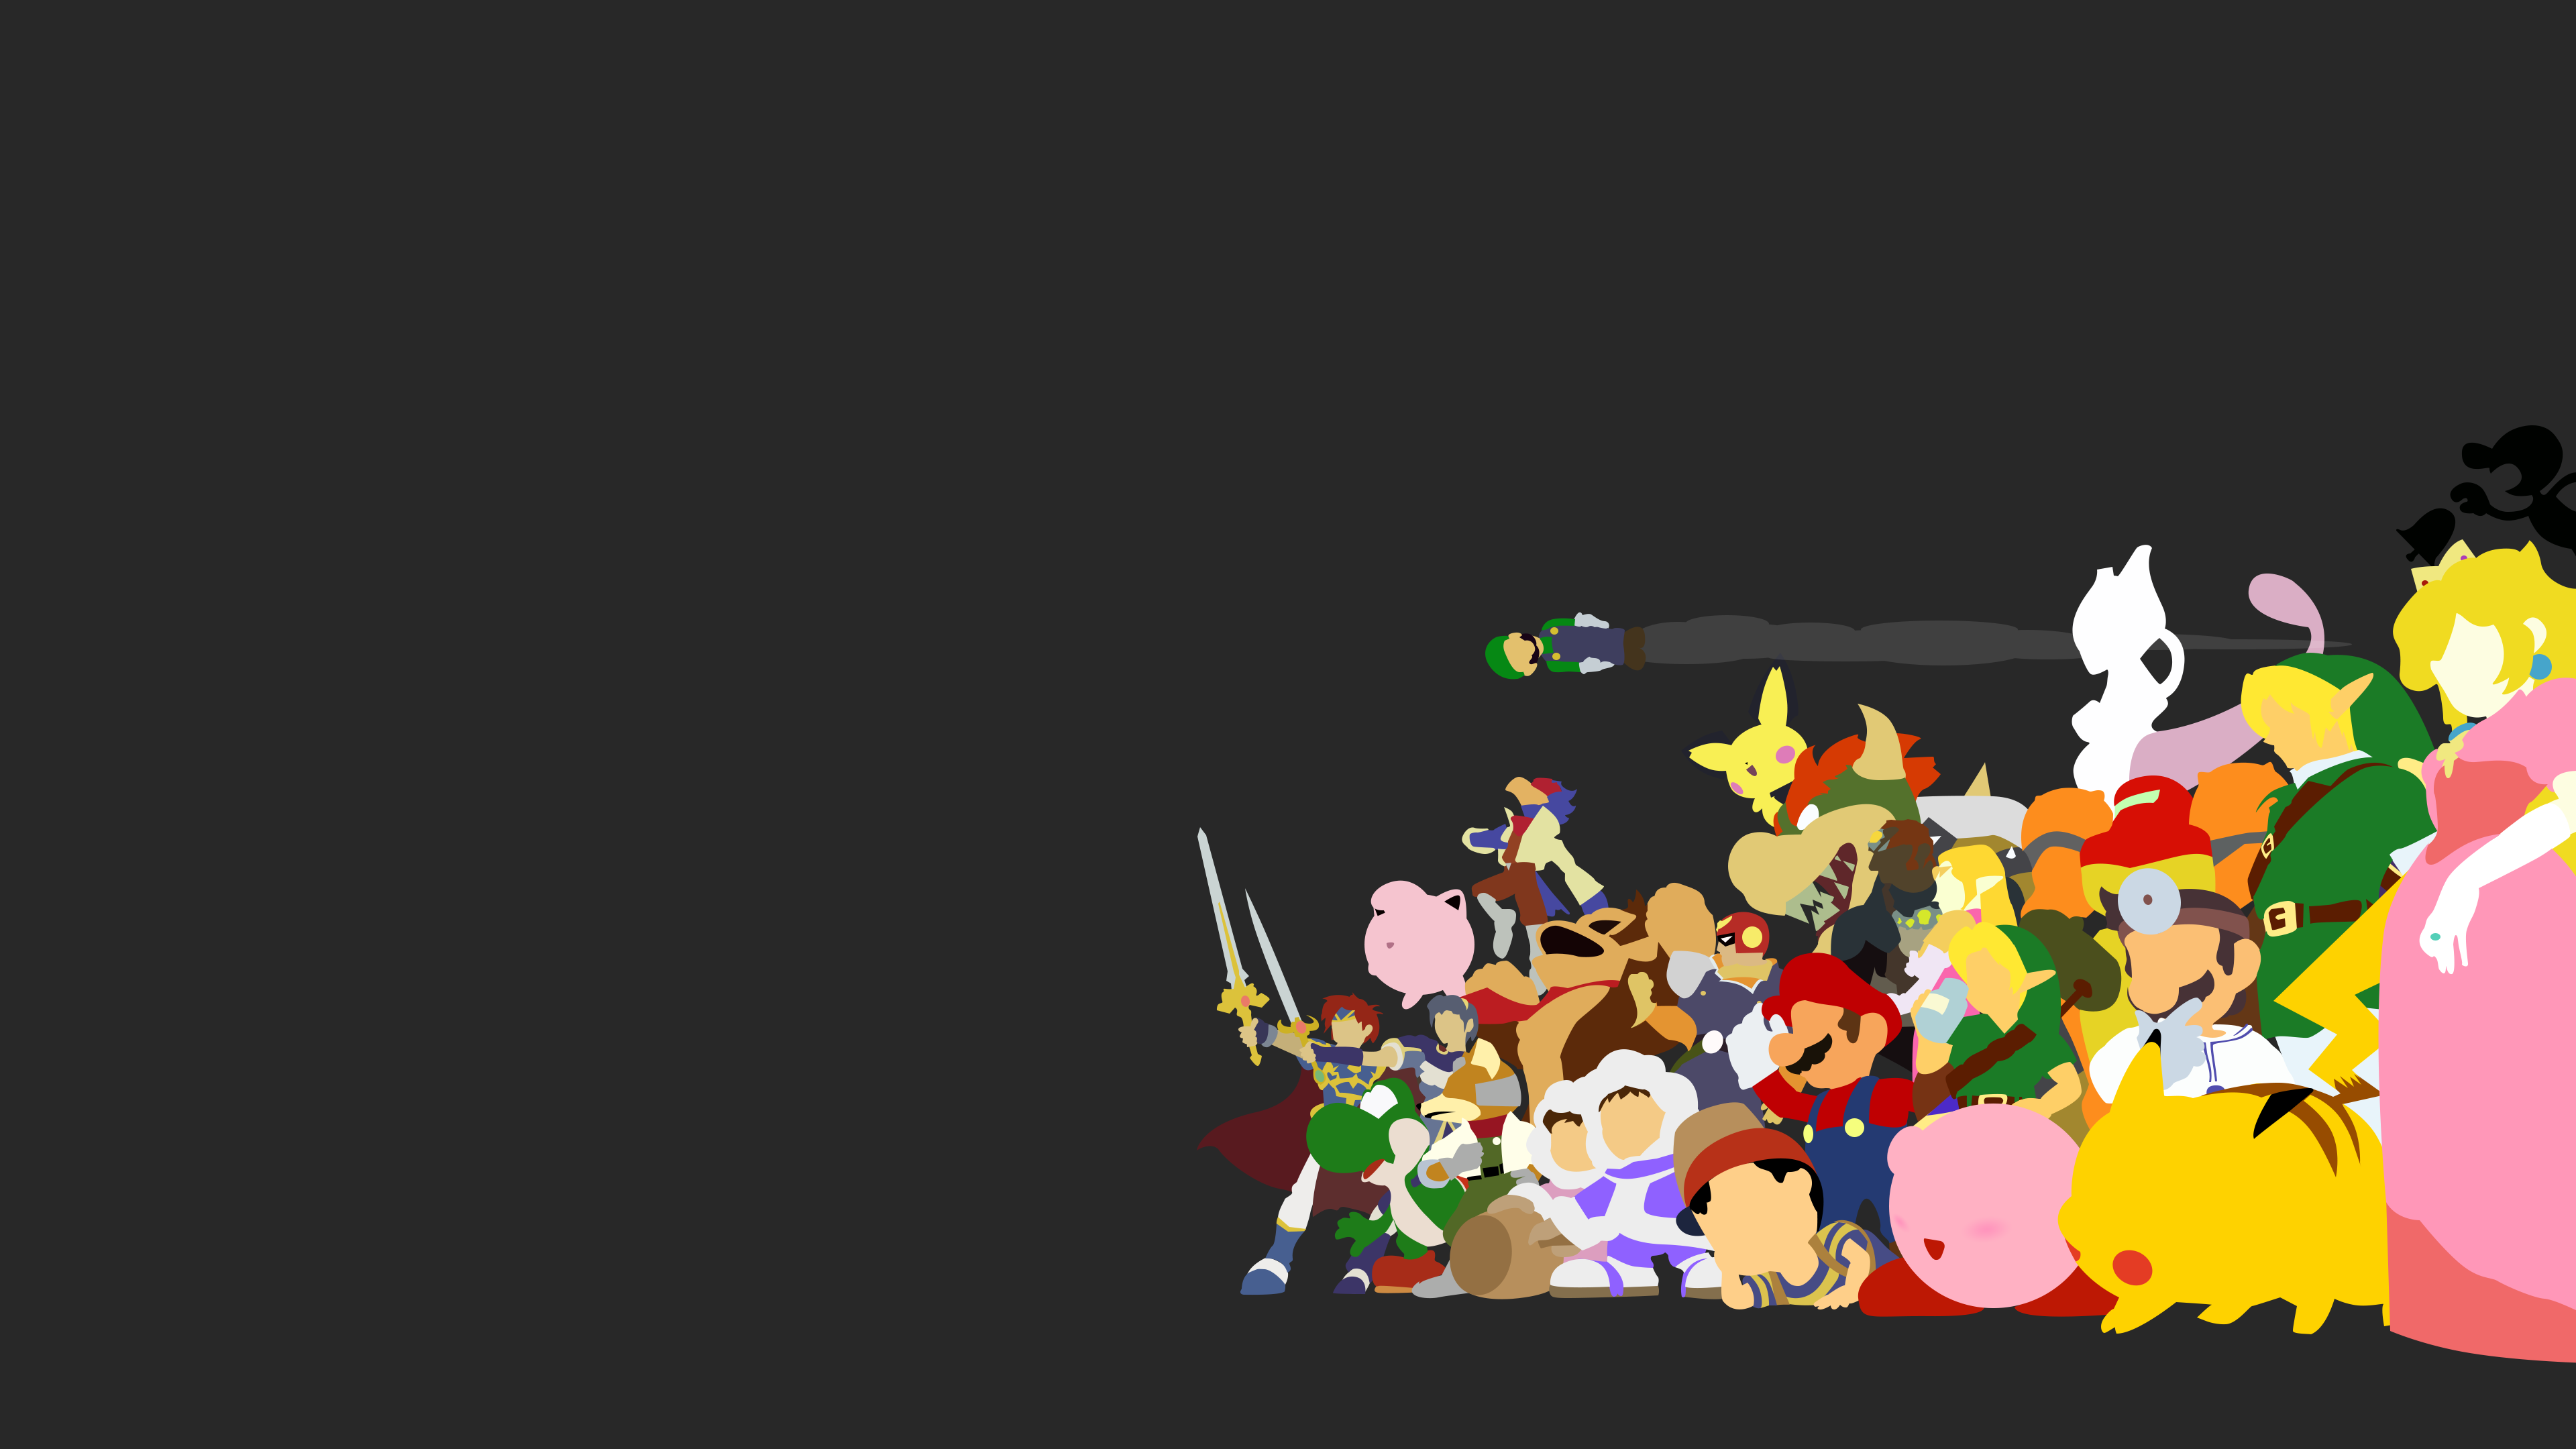 Smash Wallpaper